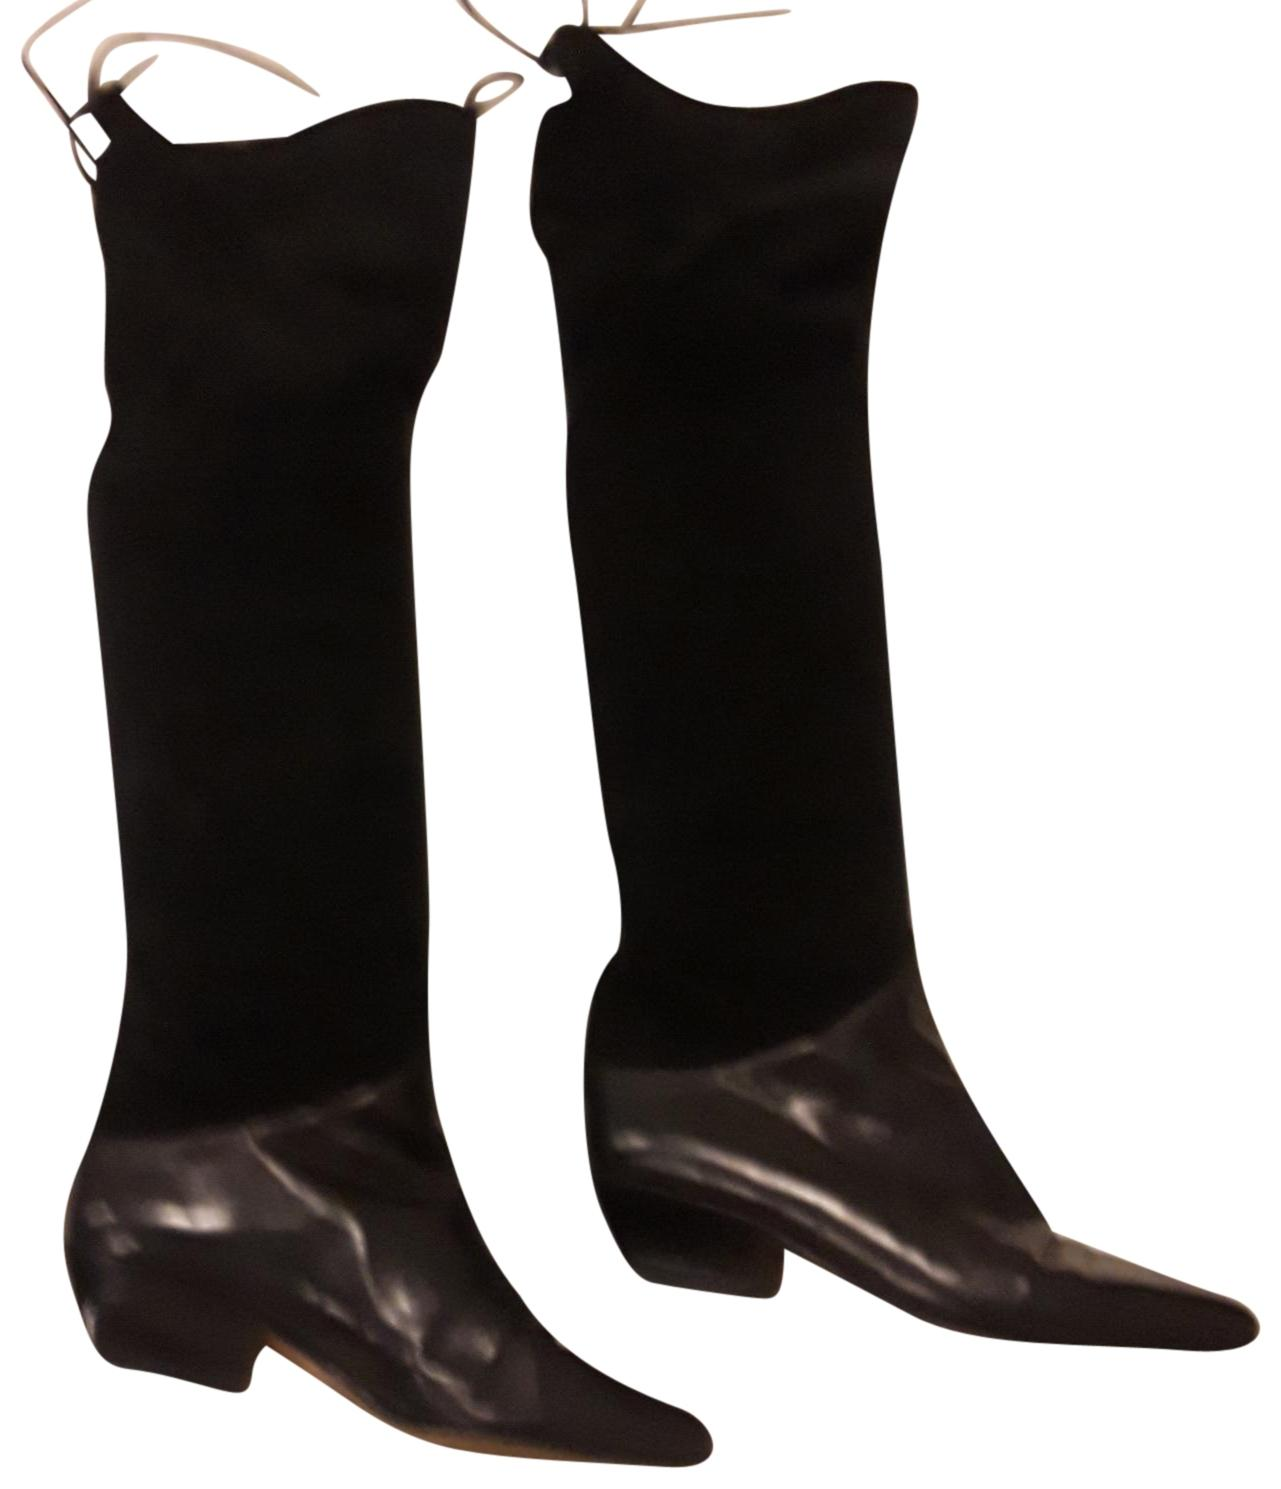 Black Thigh High Suede W/Ties Boots/Booties Size EU 36.5 (Approx. B) US 6.5) Regular (M, B) (Approx. 019dd0